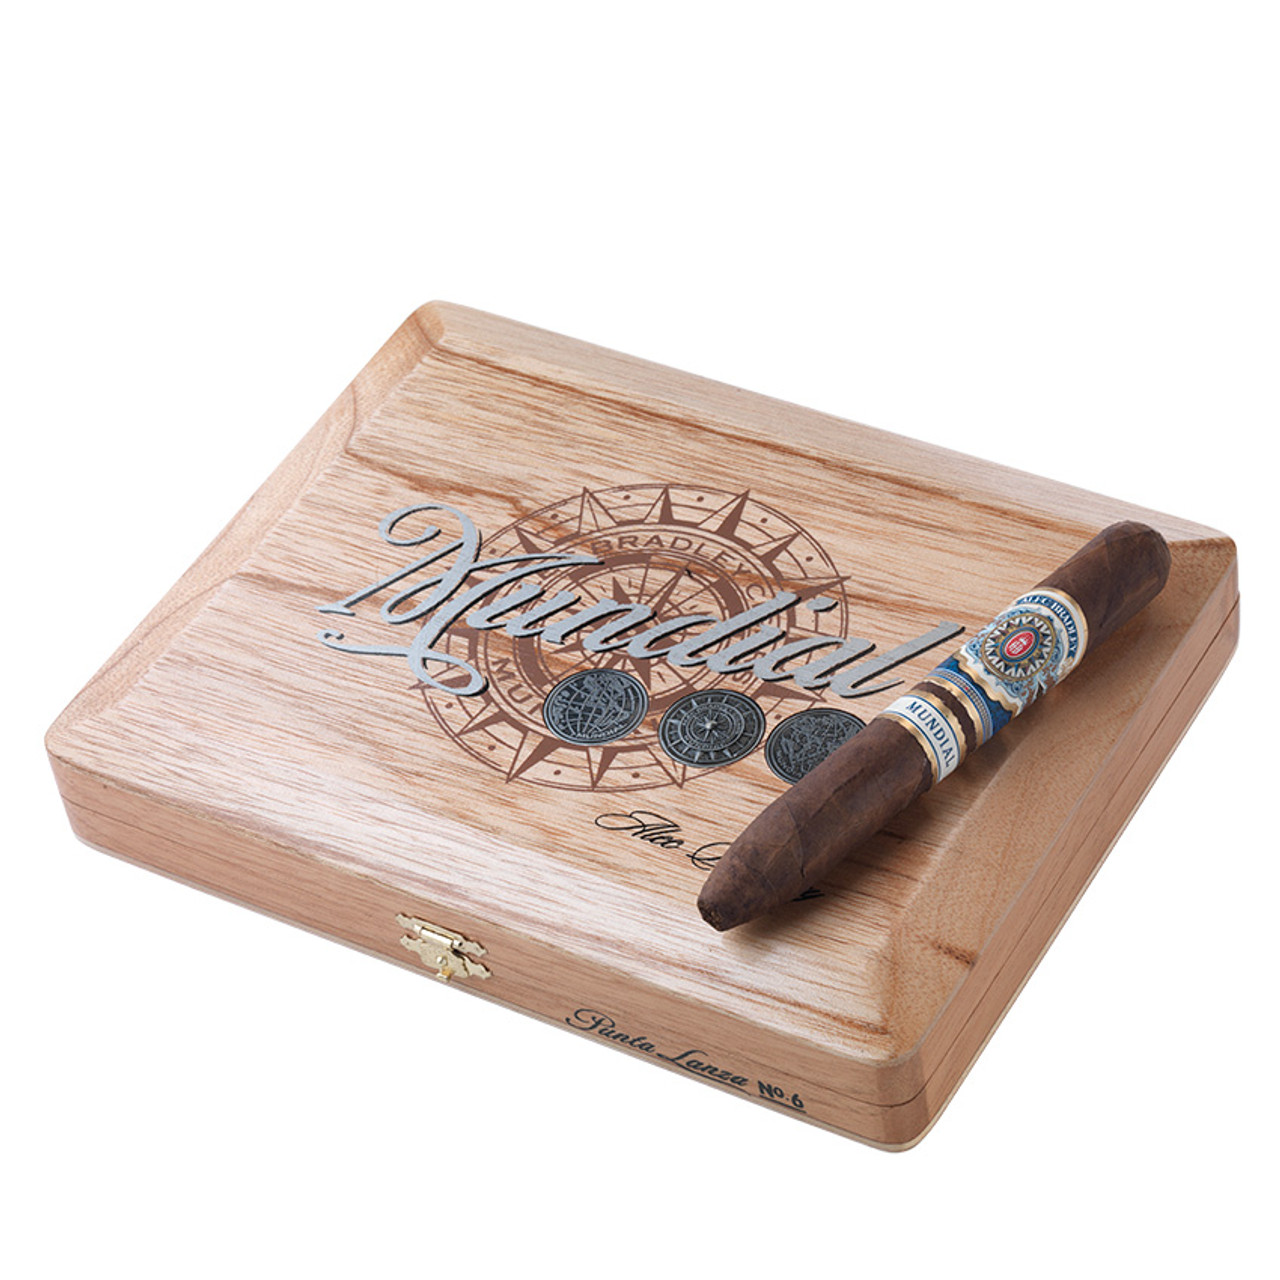 Alec Bradley Mundial PL# 6 Cigars - 6 x 54 (Box of 10)